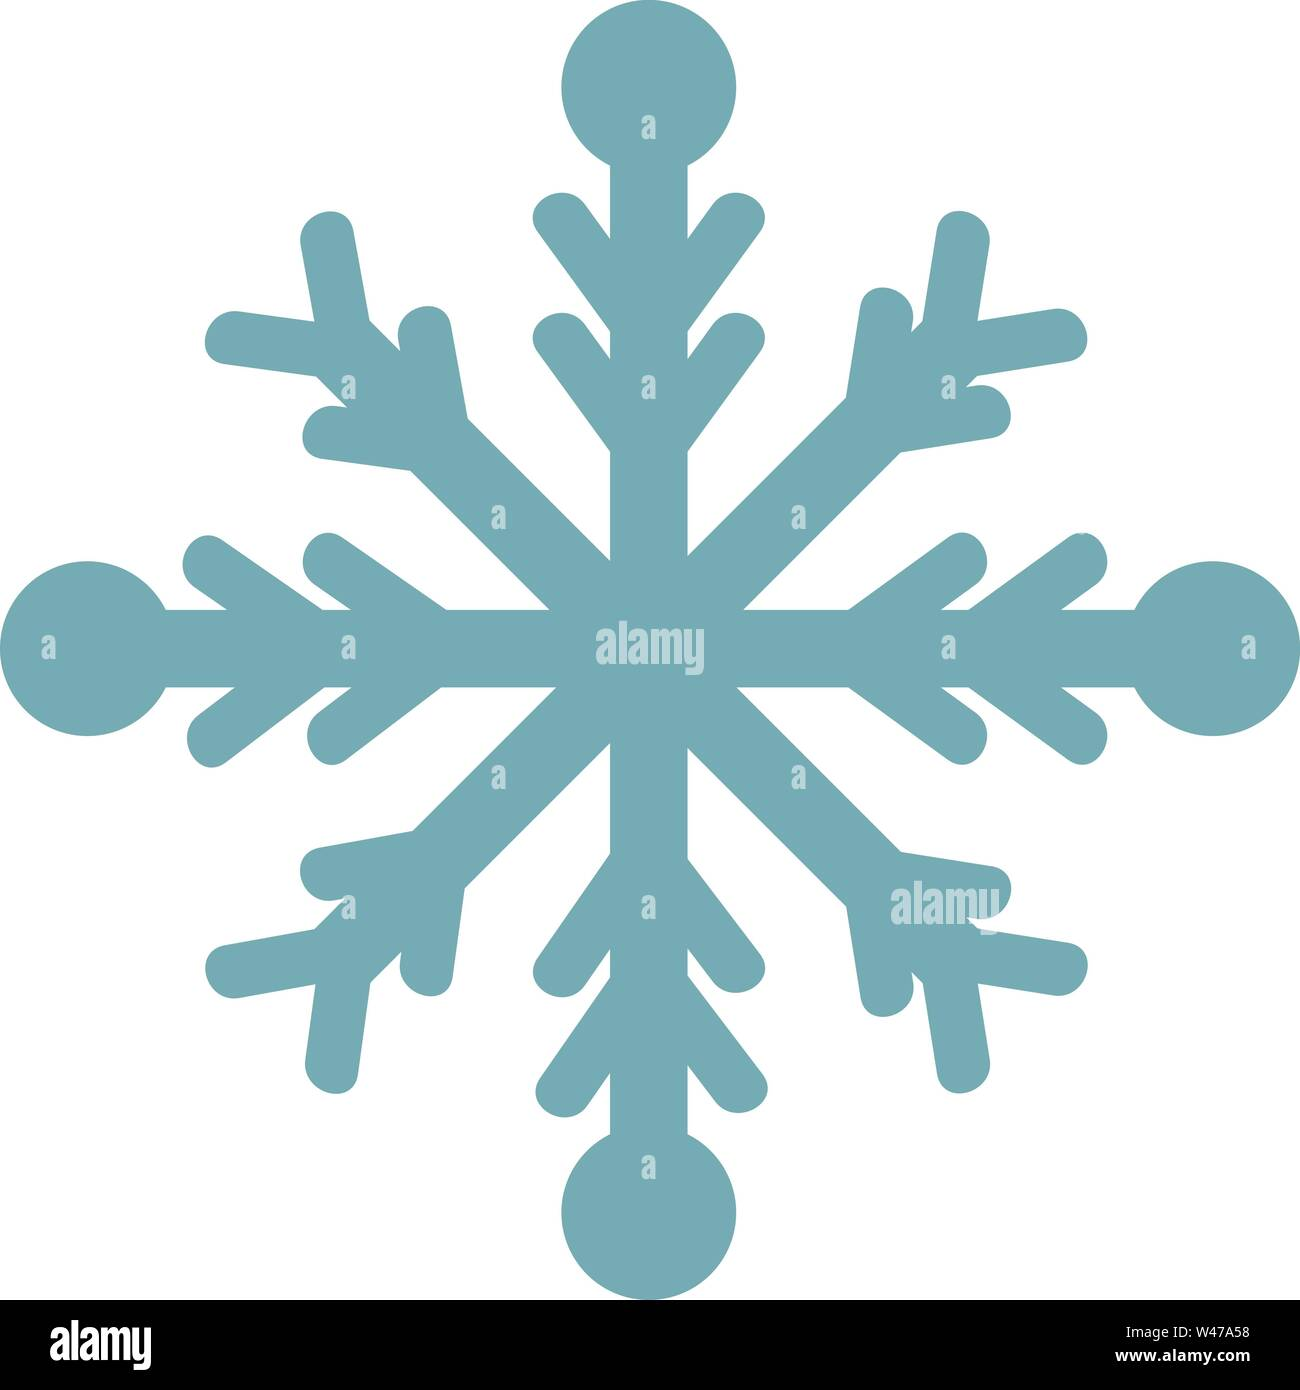 Snowflake, illustration, vector on white background. - Stock Image